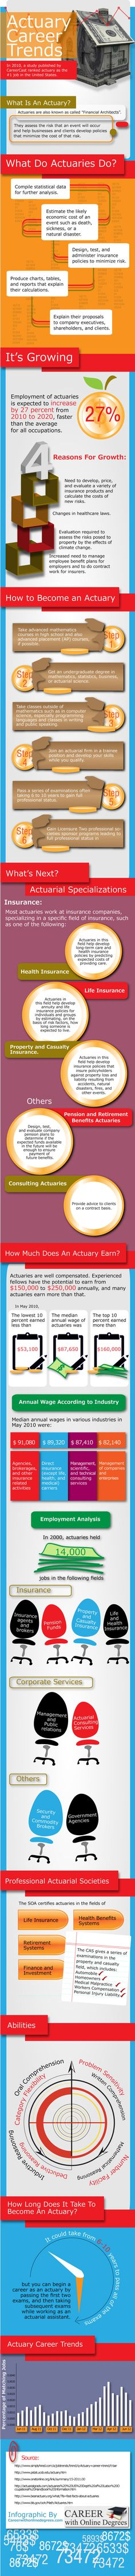 steps to changing your career lost career and its meaning actuary career career onlinedegrees